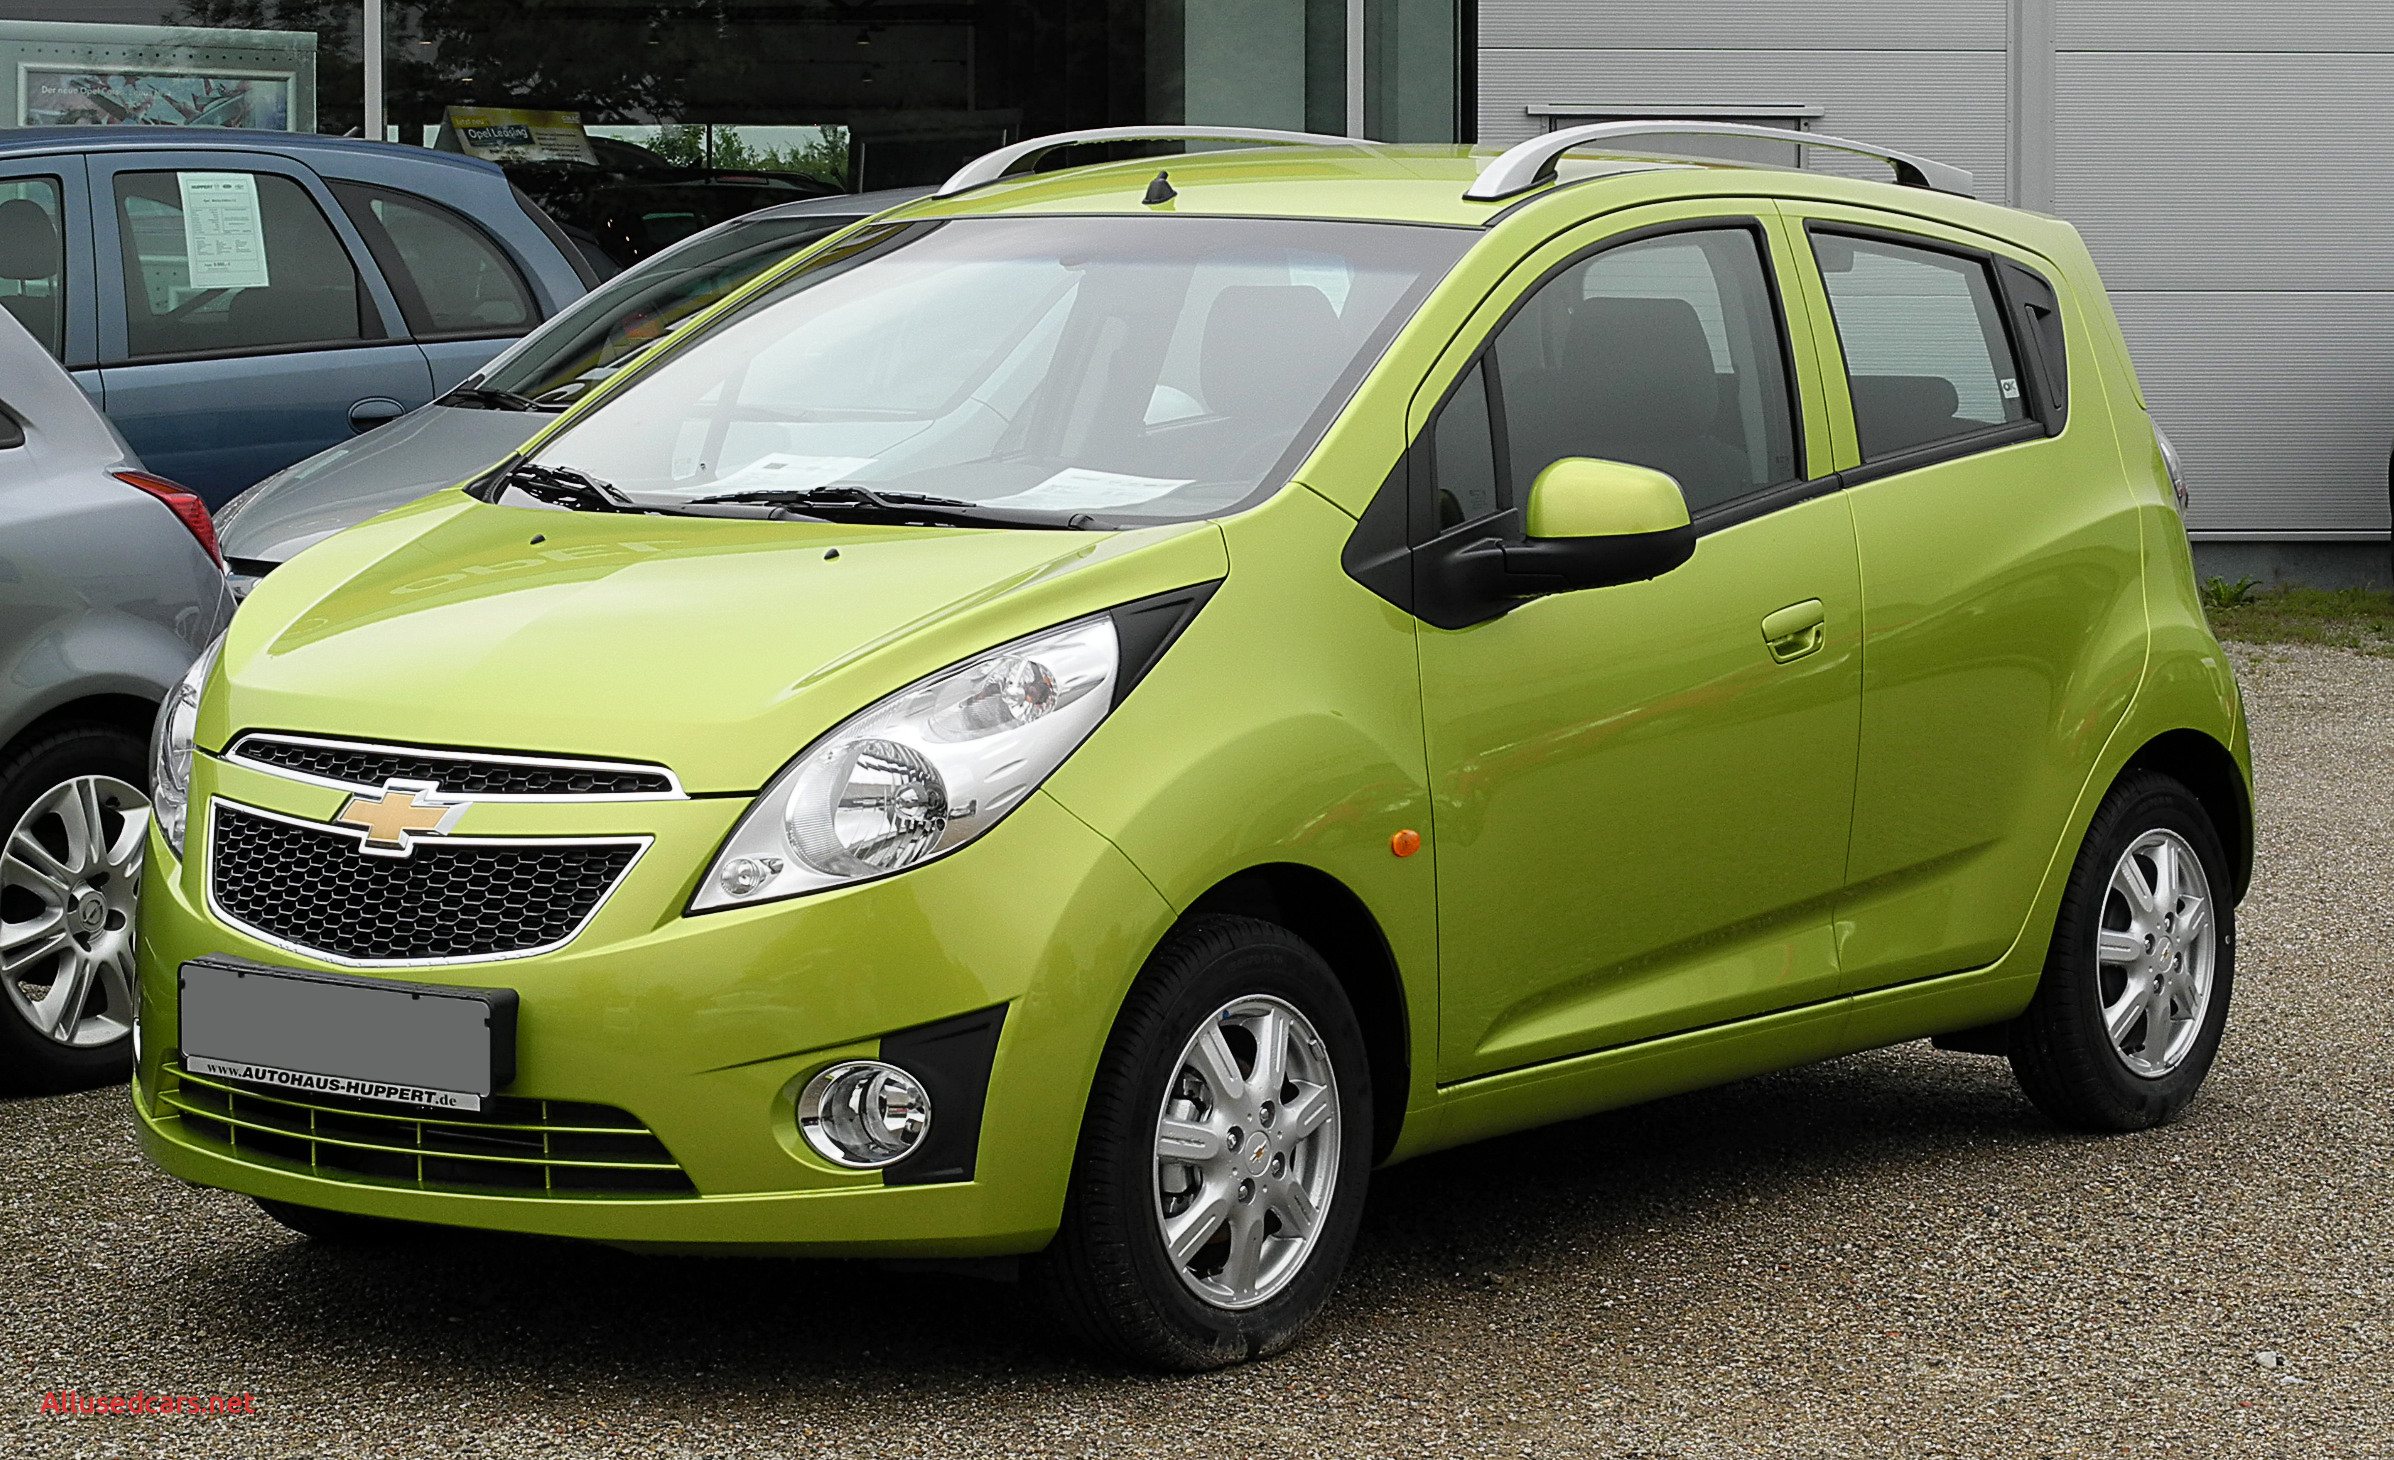 Small 5 Door Cars for Sale Near Me Unique Chevrolet Spark